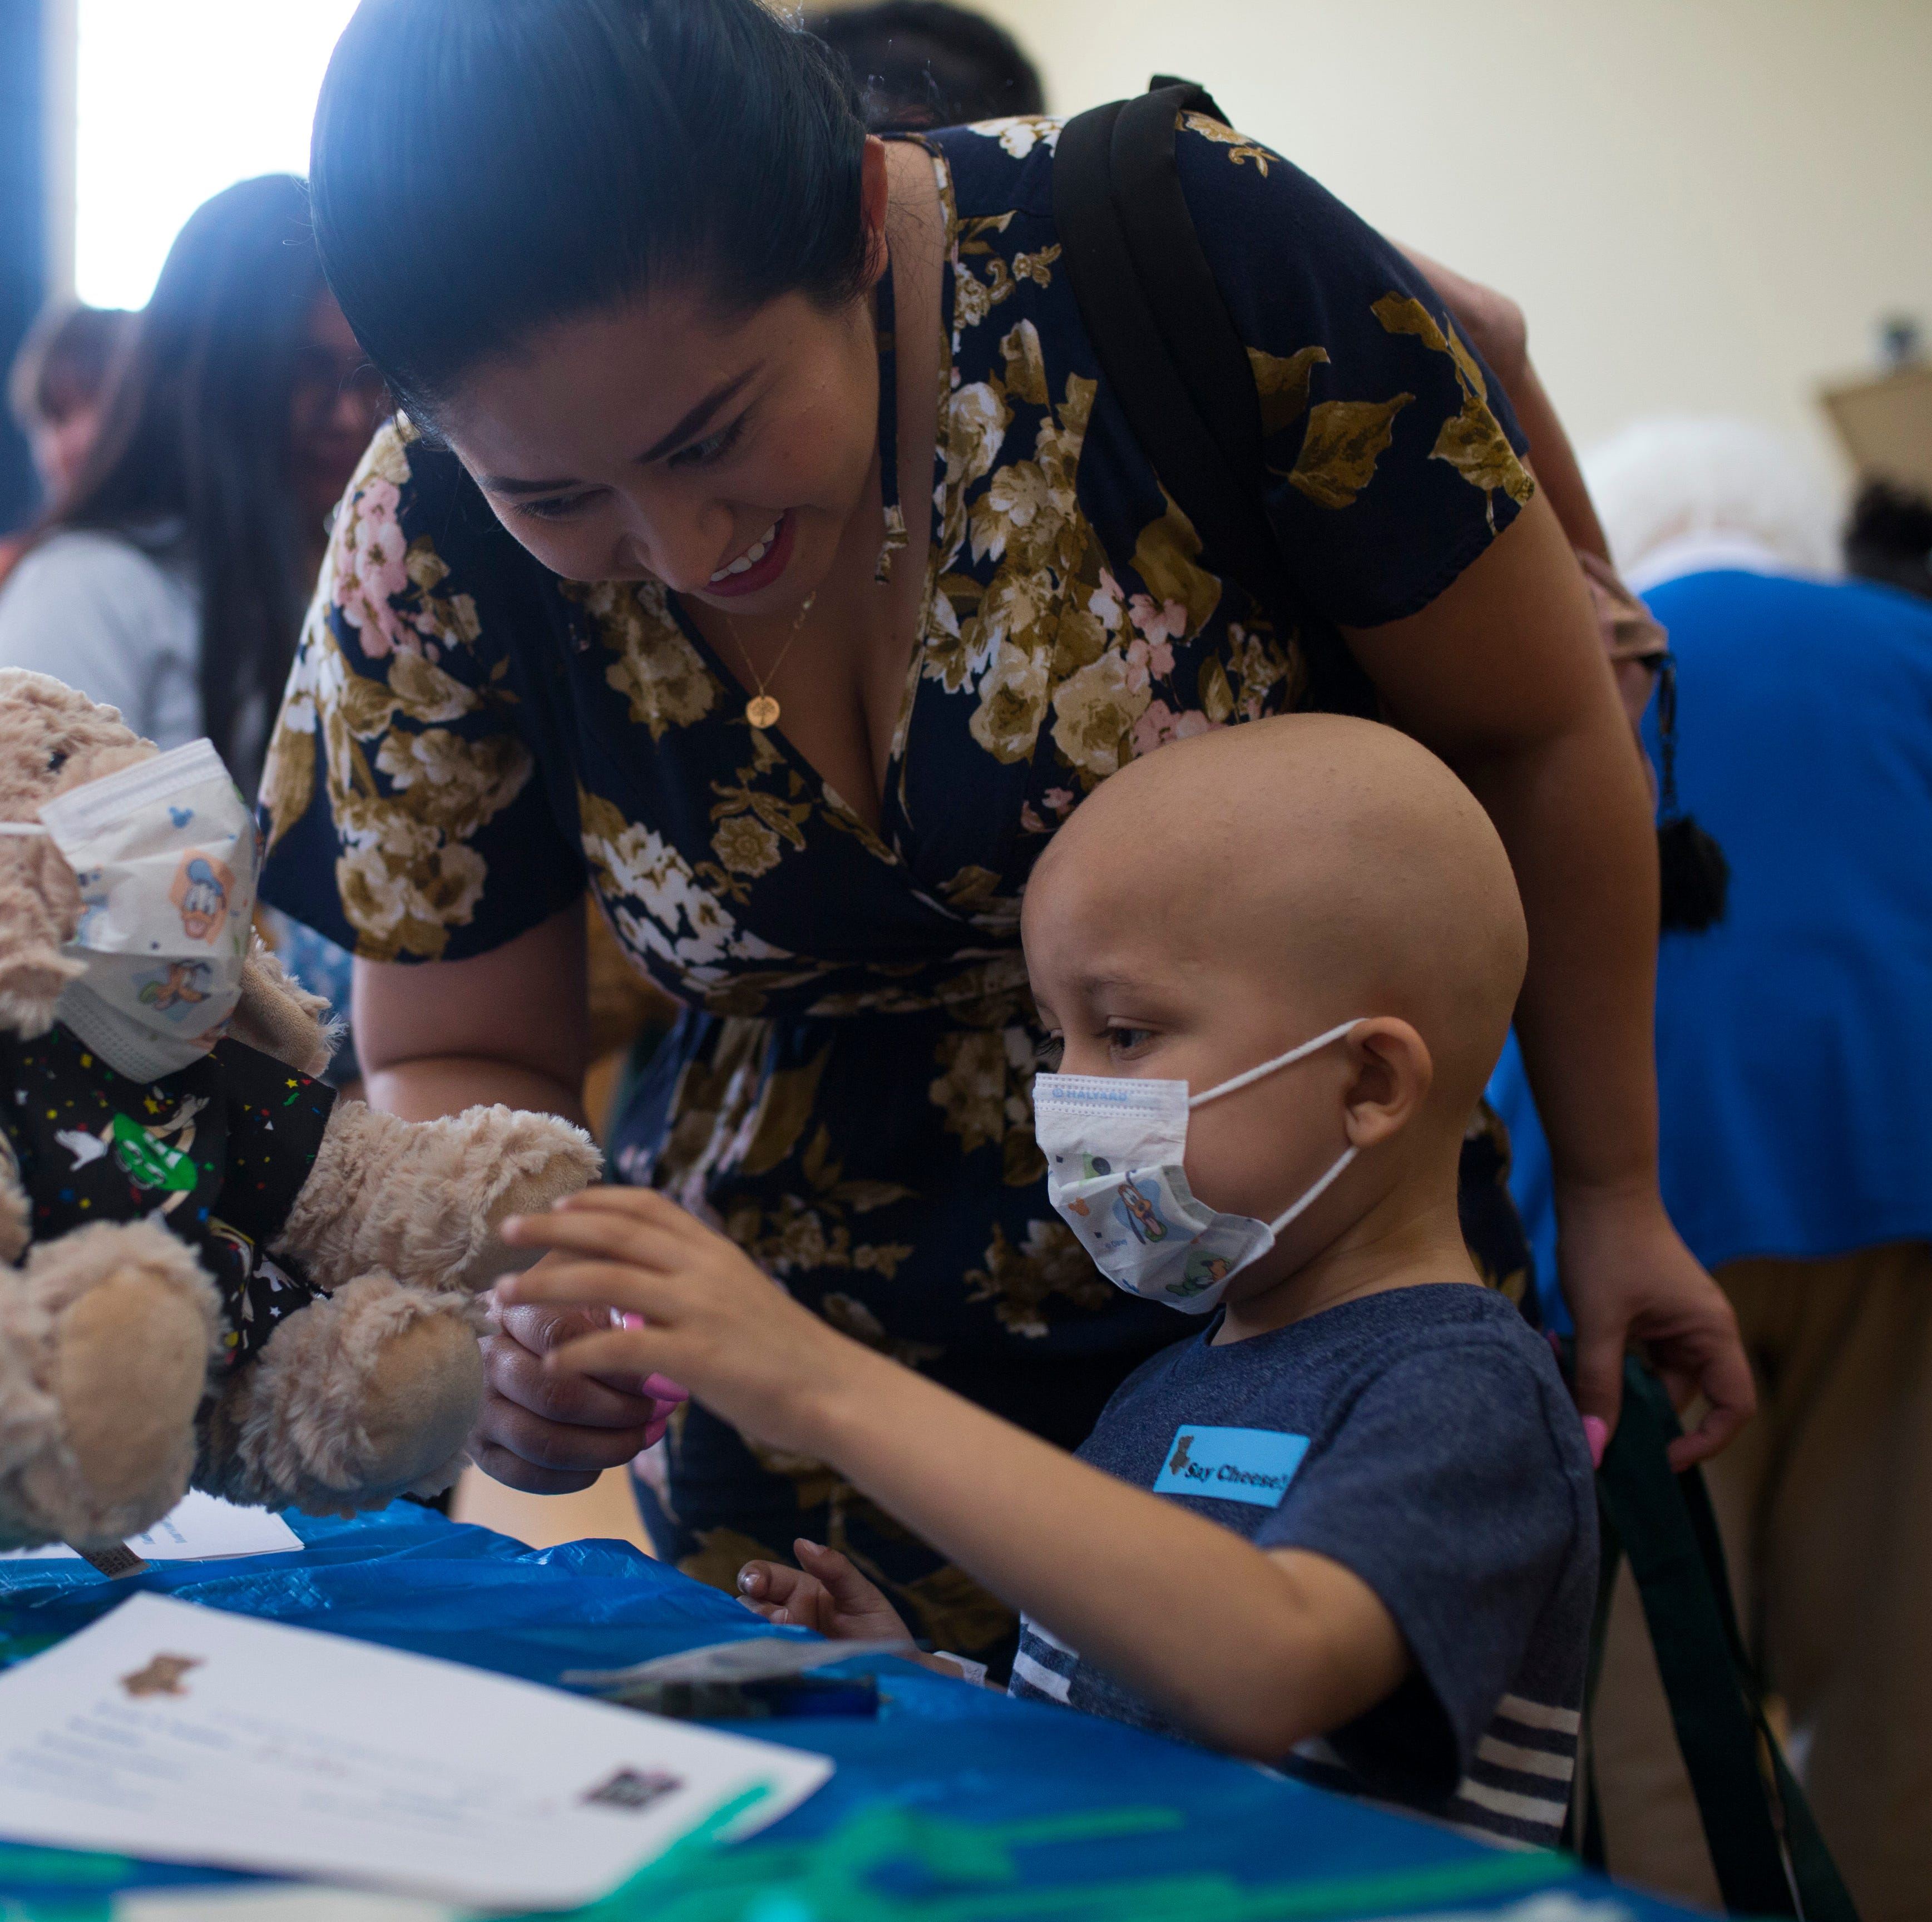 At Teddy Bear Hospital, children become the doctors